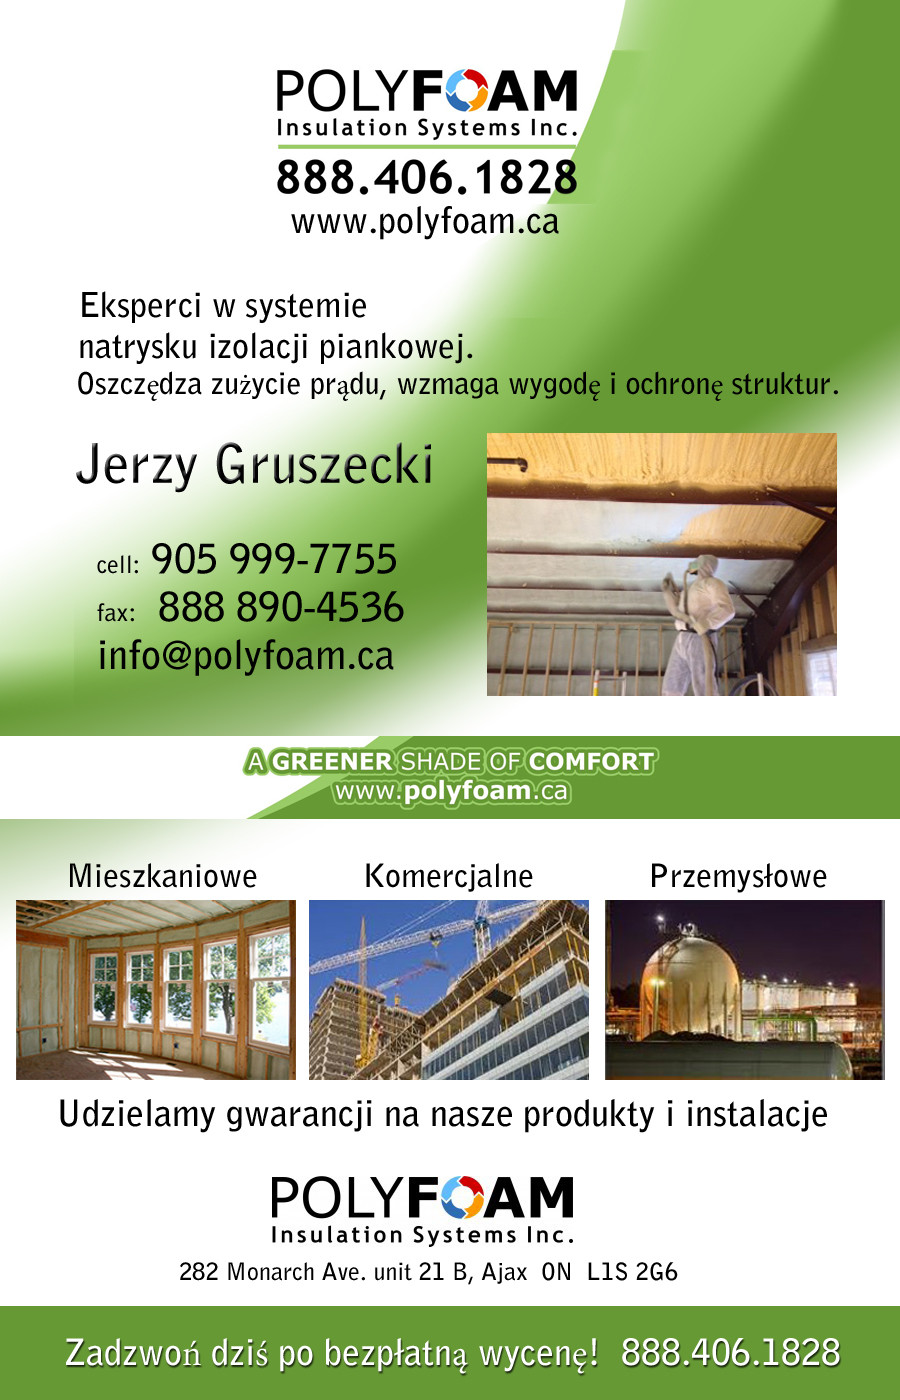 PolyFoam Insulation Systems Inc. Ajax Ontario